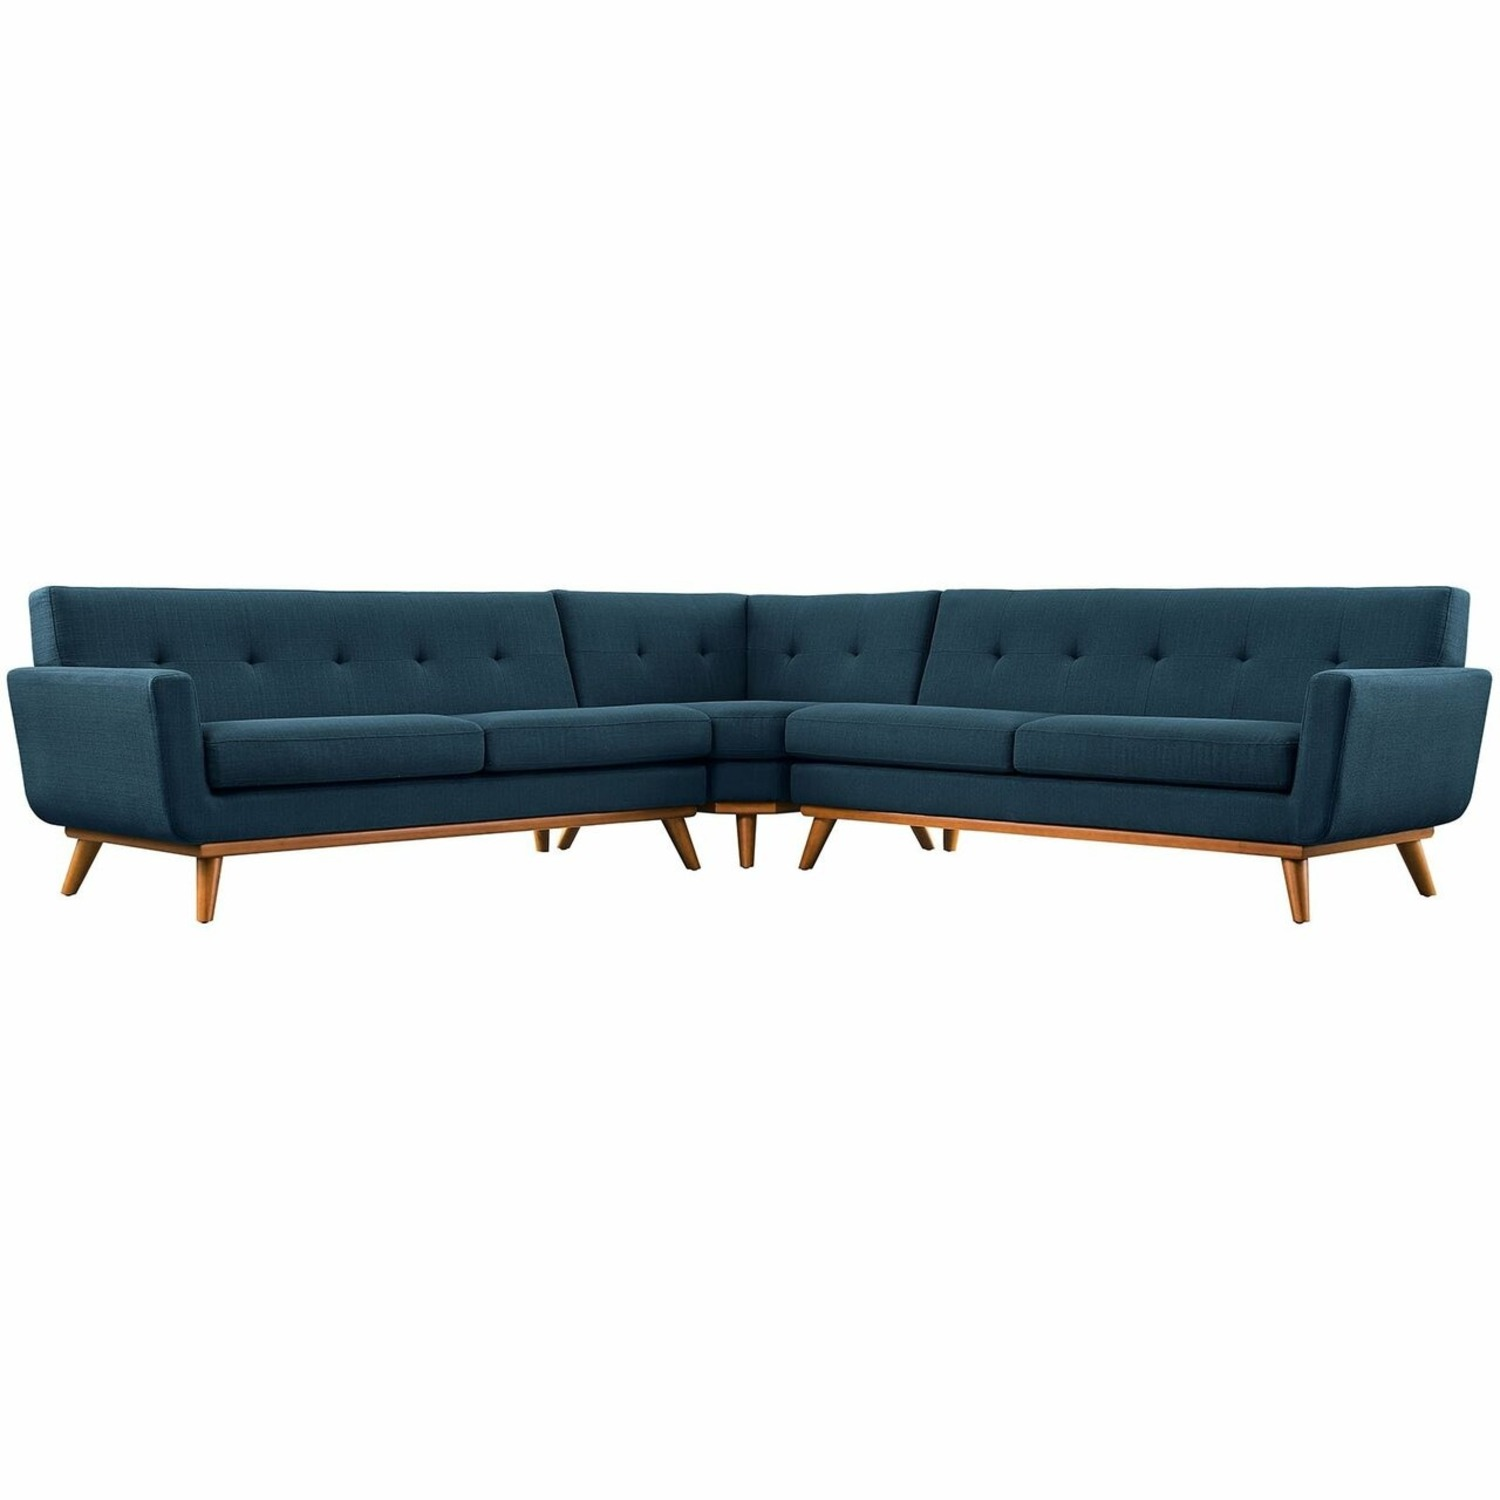 3-Piece L-Shaped Sectional In Azure Upholstery - image-0